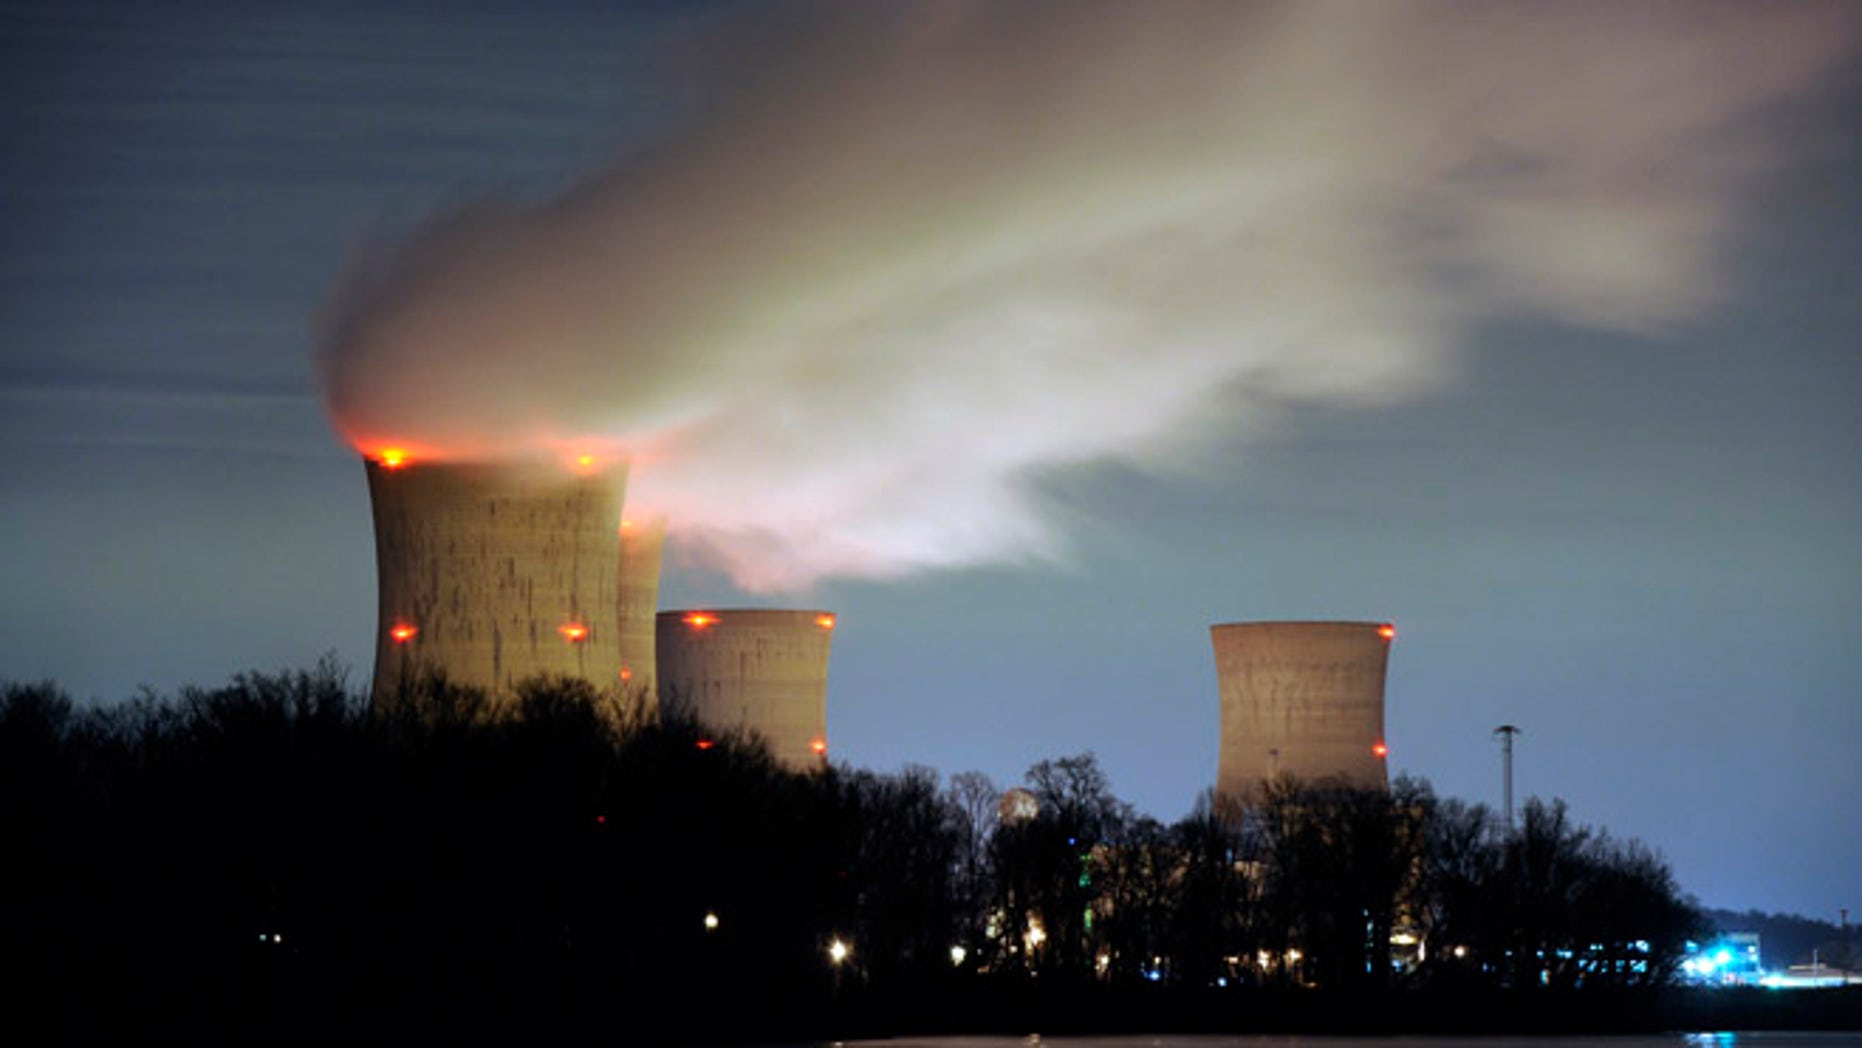 March 15, 2011: The Three Mile Island nuclear power plant, where the U.S. suffered its most serious nuclear accident in 1979, is seen across the Susquehanna River in Middletown, Pennsylvania in this night view.